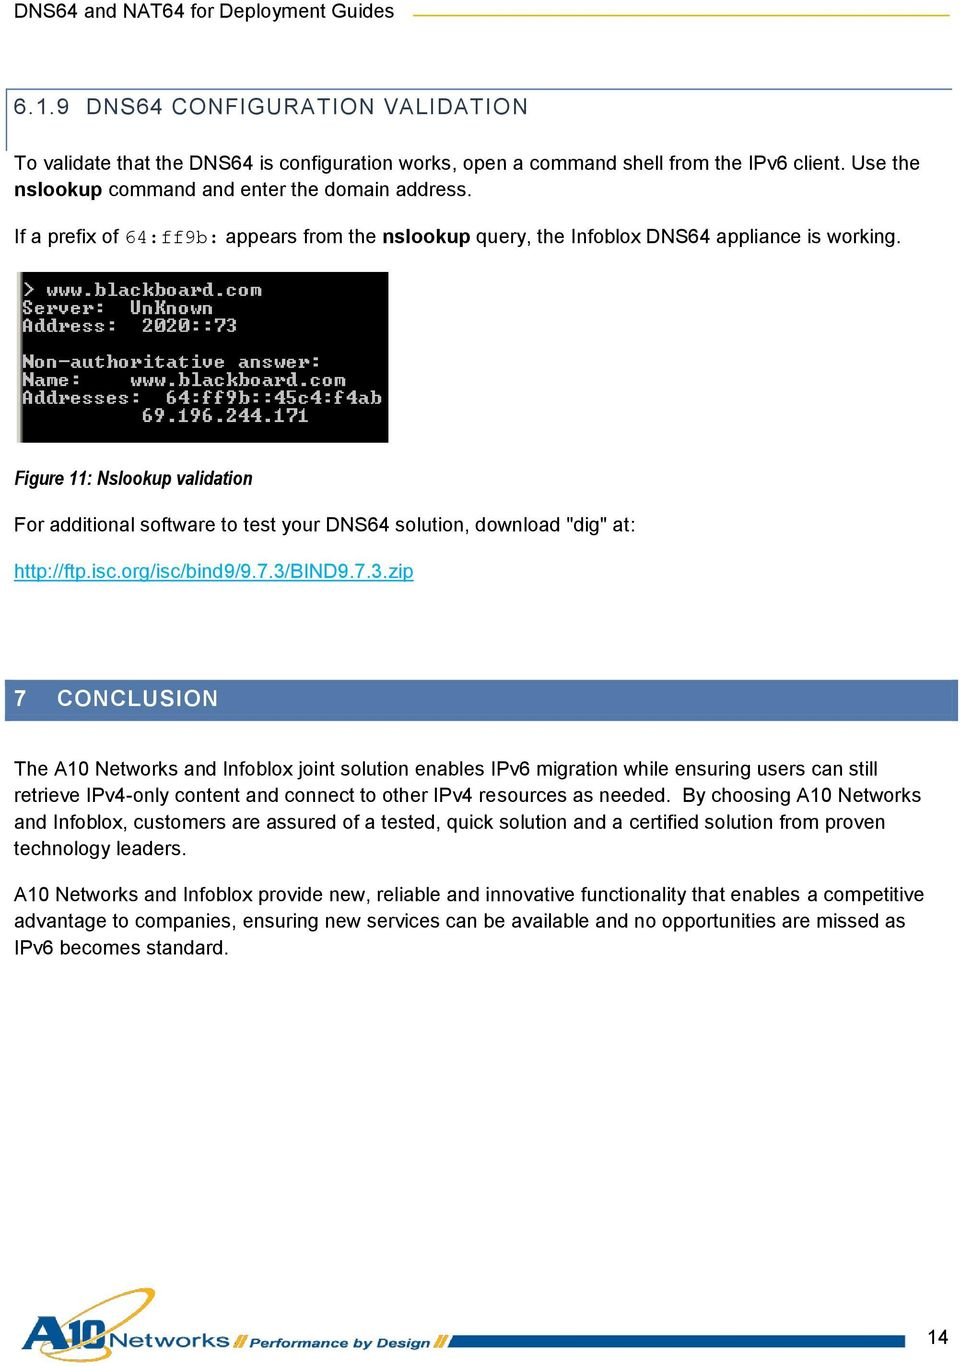 Deployment Guide A10 Networks/Infoblox Joint DNS64 and NAT64